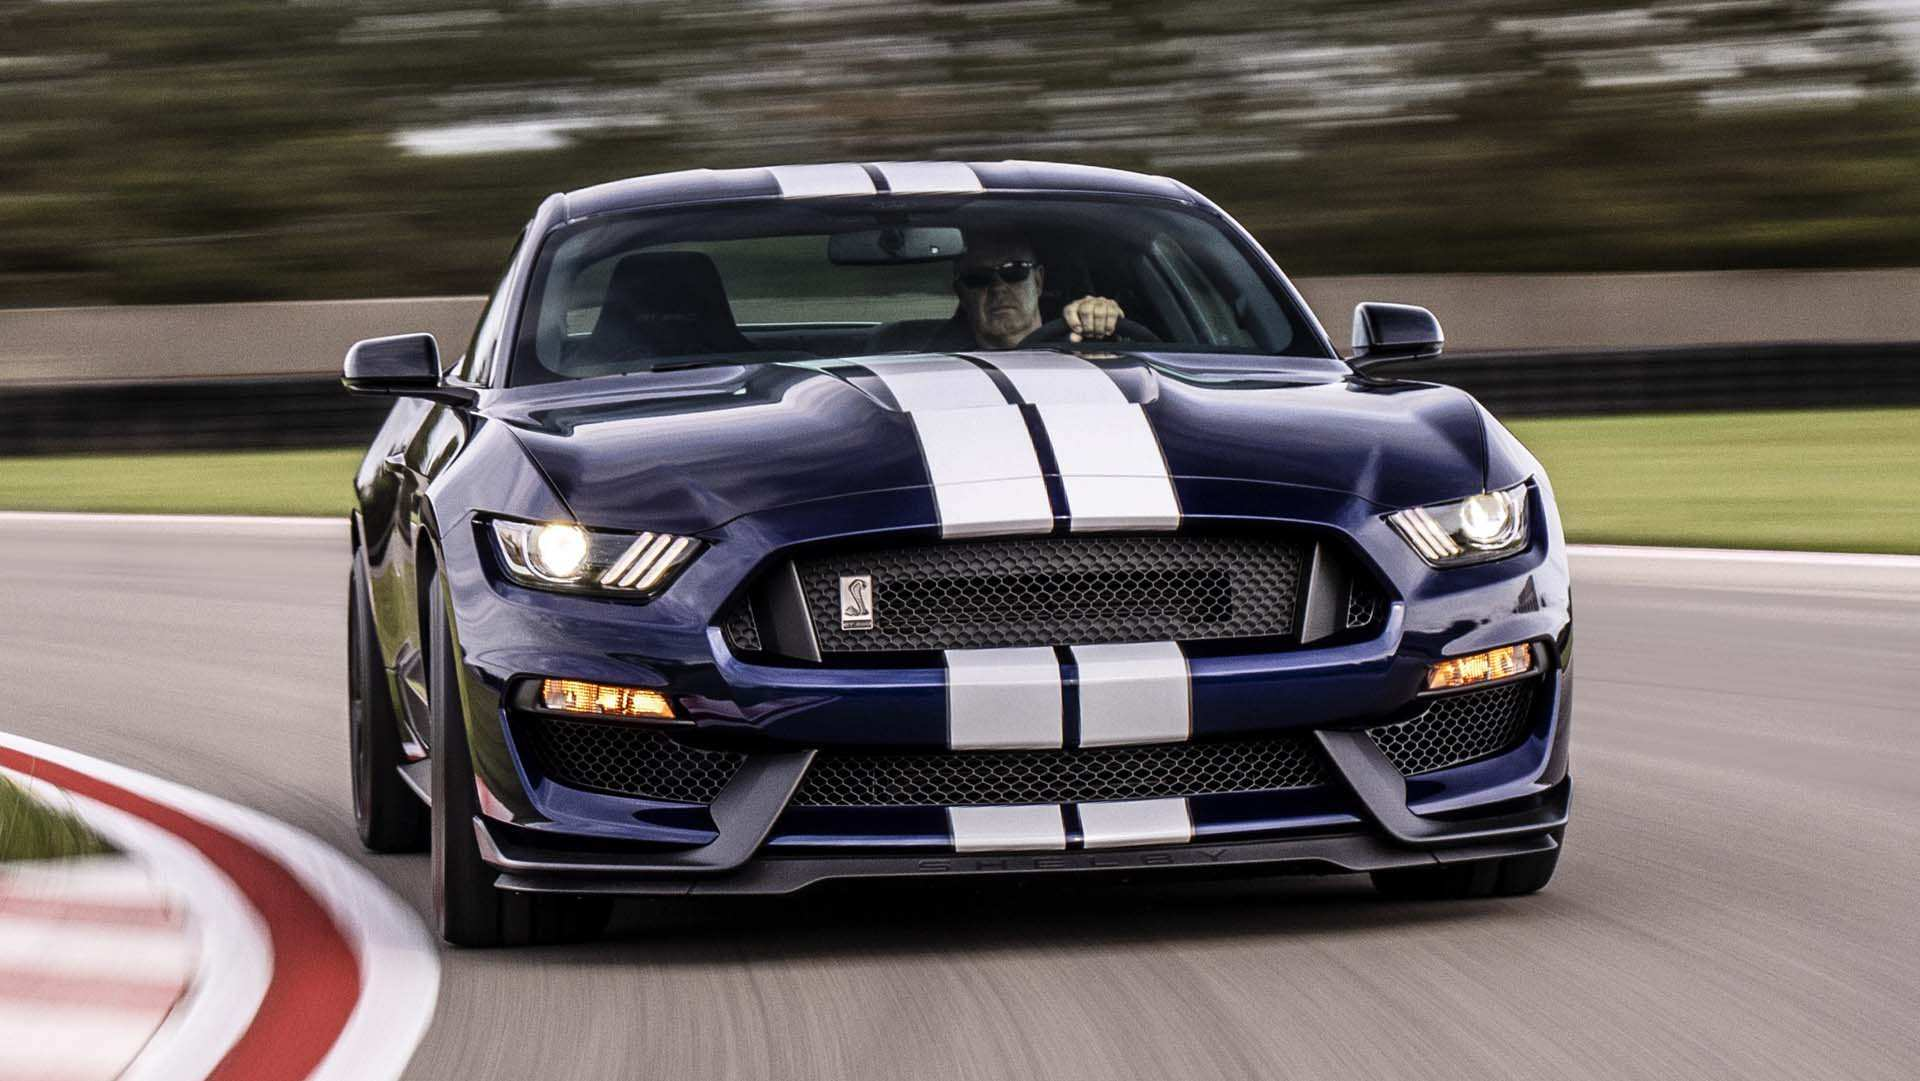 12 New 2019 Mustang Shelby Gt350 Ratings